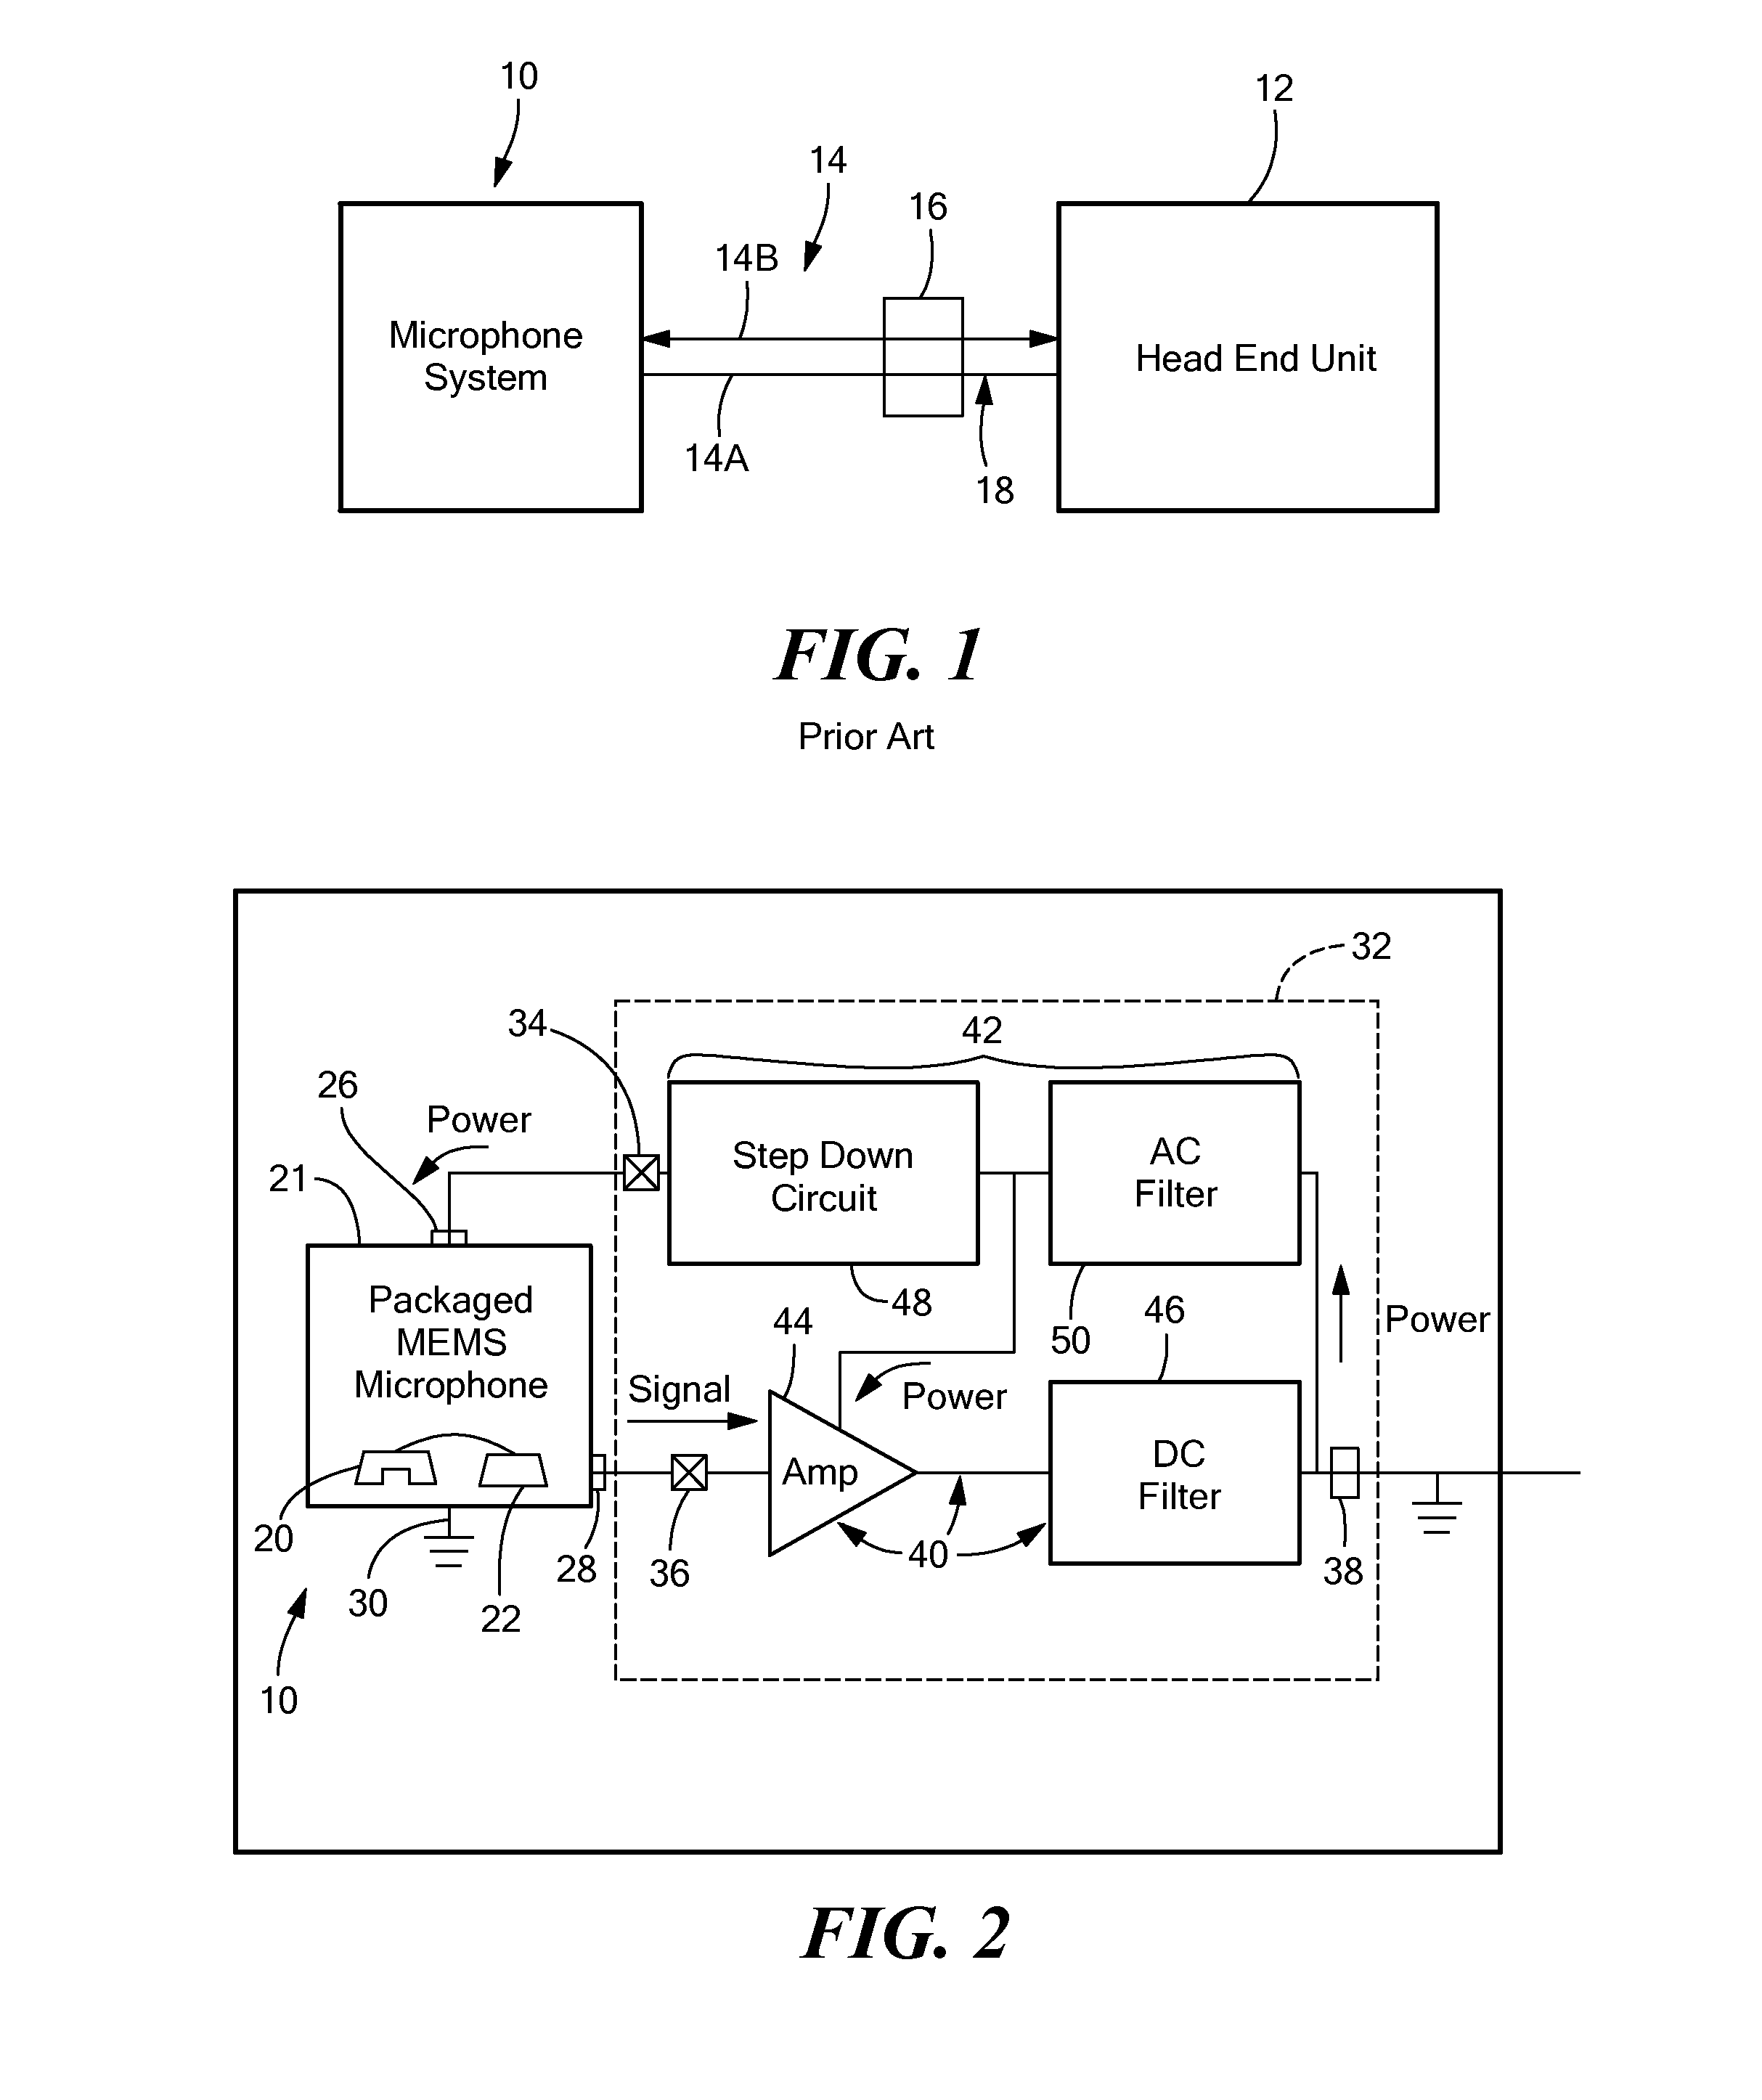 Brevet Us20130070940 Circuit And Apparatus For Connecting A Mems Phantom Power Wiring Diagram Patent Drawing